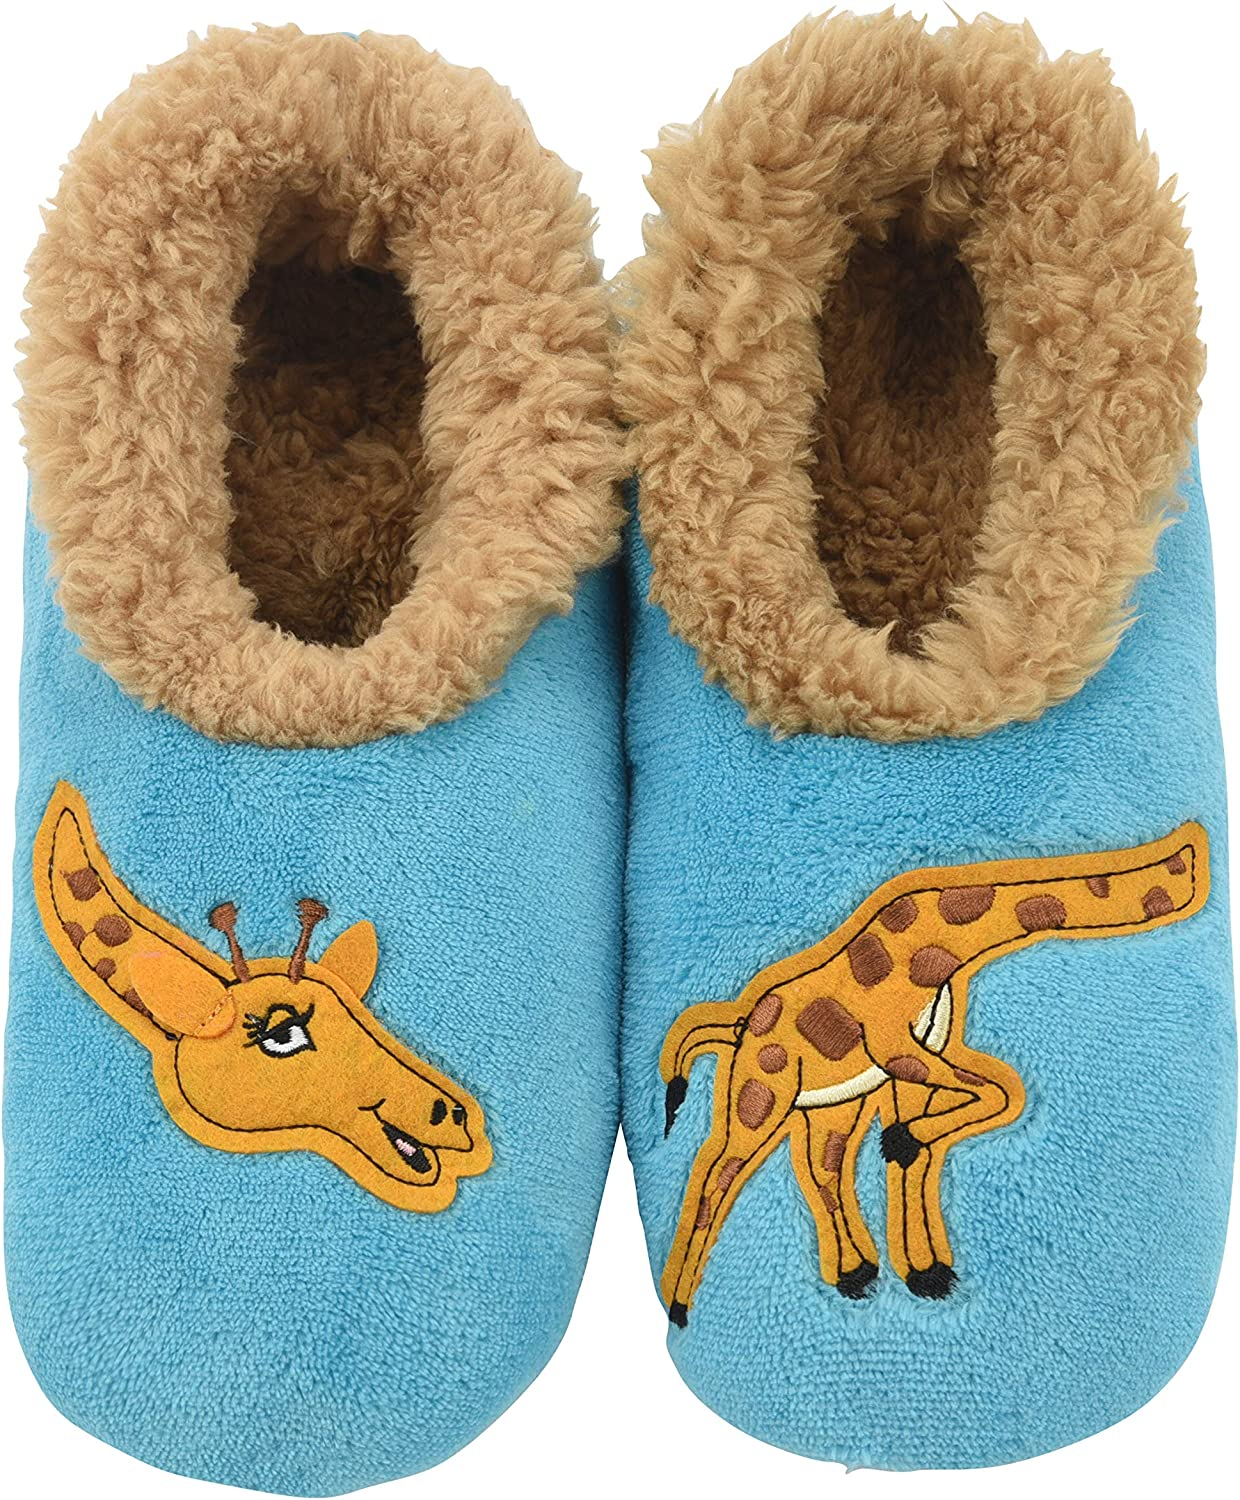 Amazon.com: Snoozies Slippers for Women